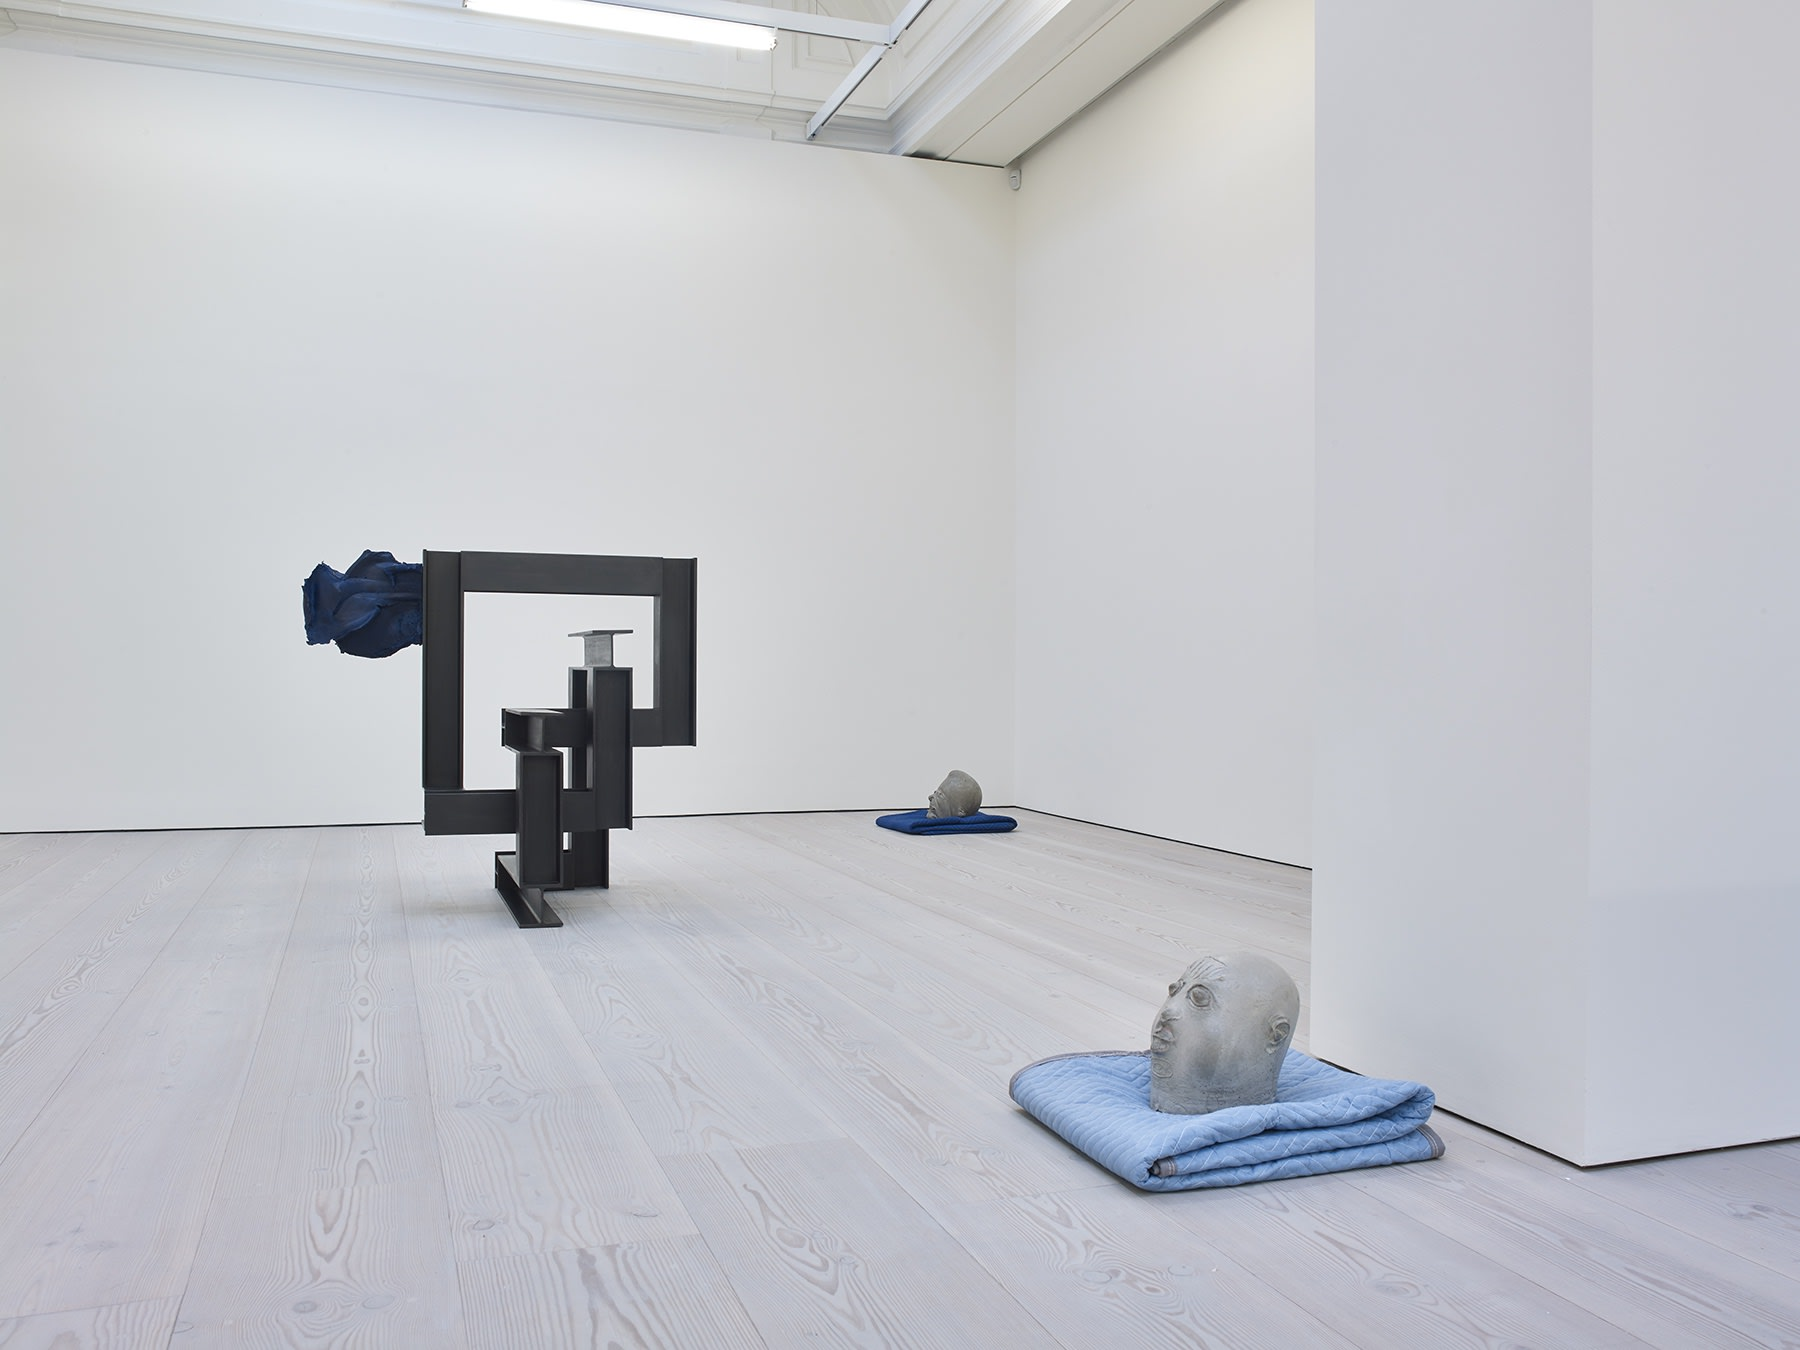 Gallery view, two abstract clay heads rest on blue blankets. To the left there is a geometric black square sculpture.